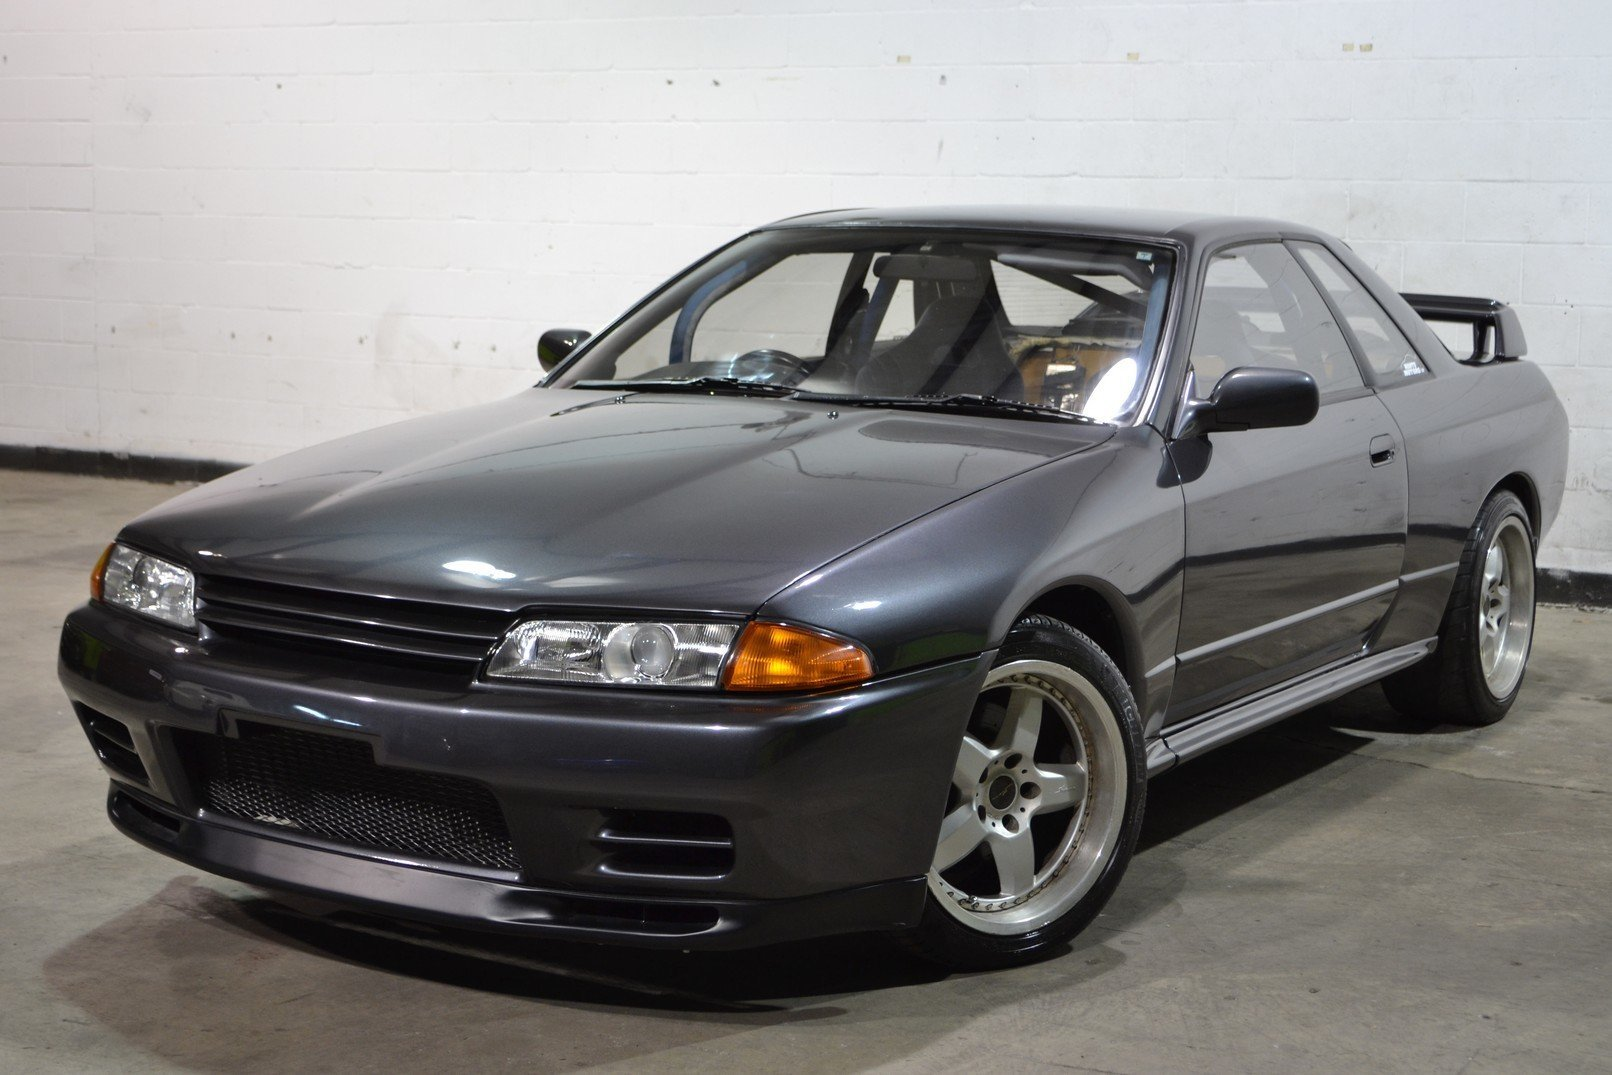 1992 nissan skyline gtr for sale 76216 mcg. Black Bedroom Furniture Sets. Home Design Ideas